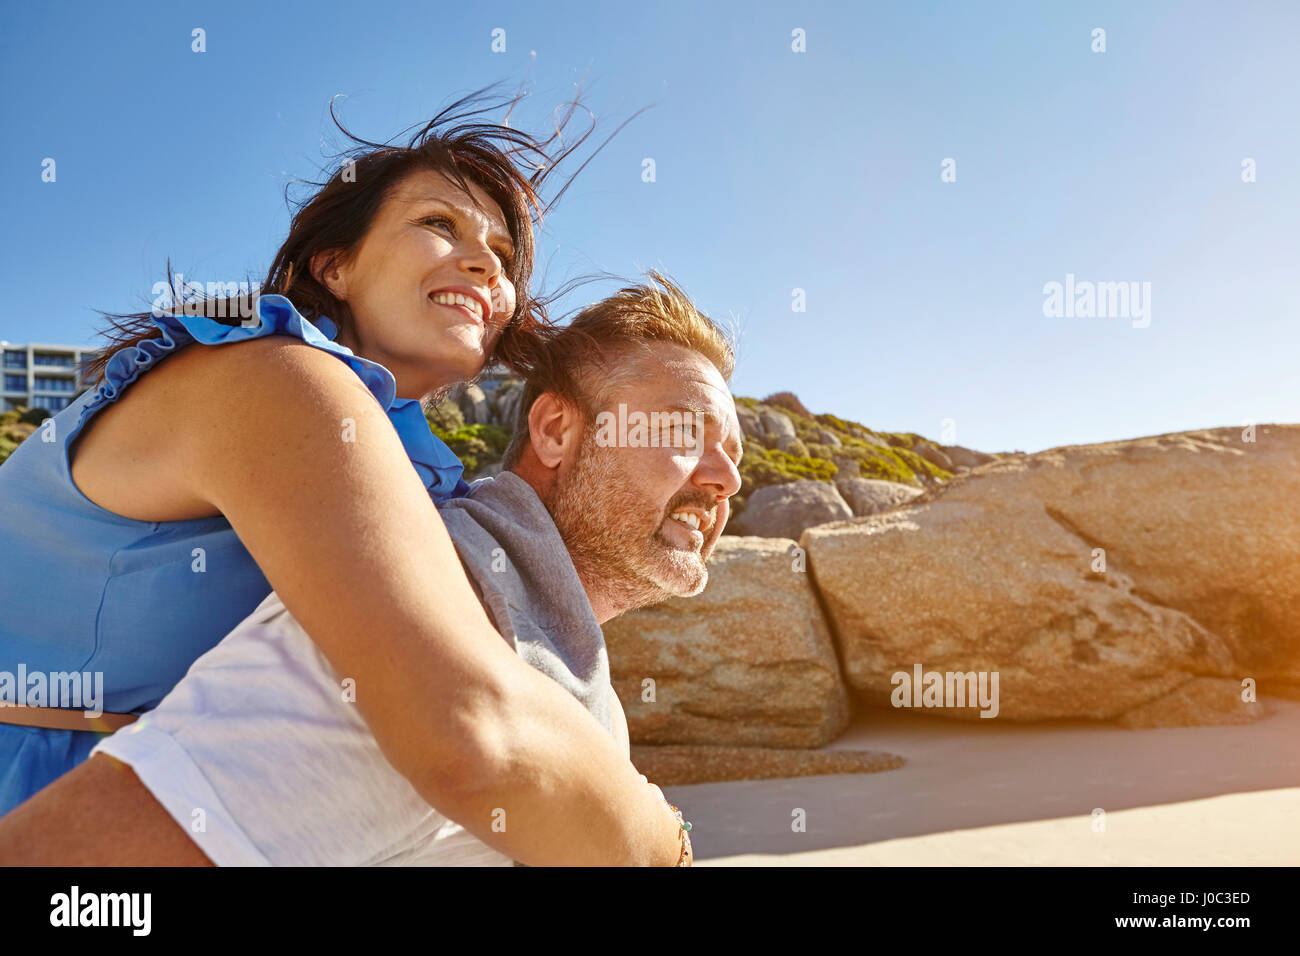 Man carrying woman on beach, Cape Town, South Africa - Stock Image